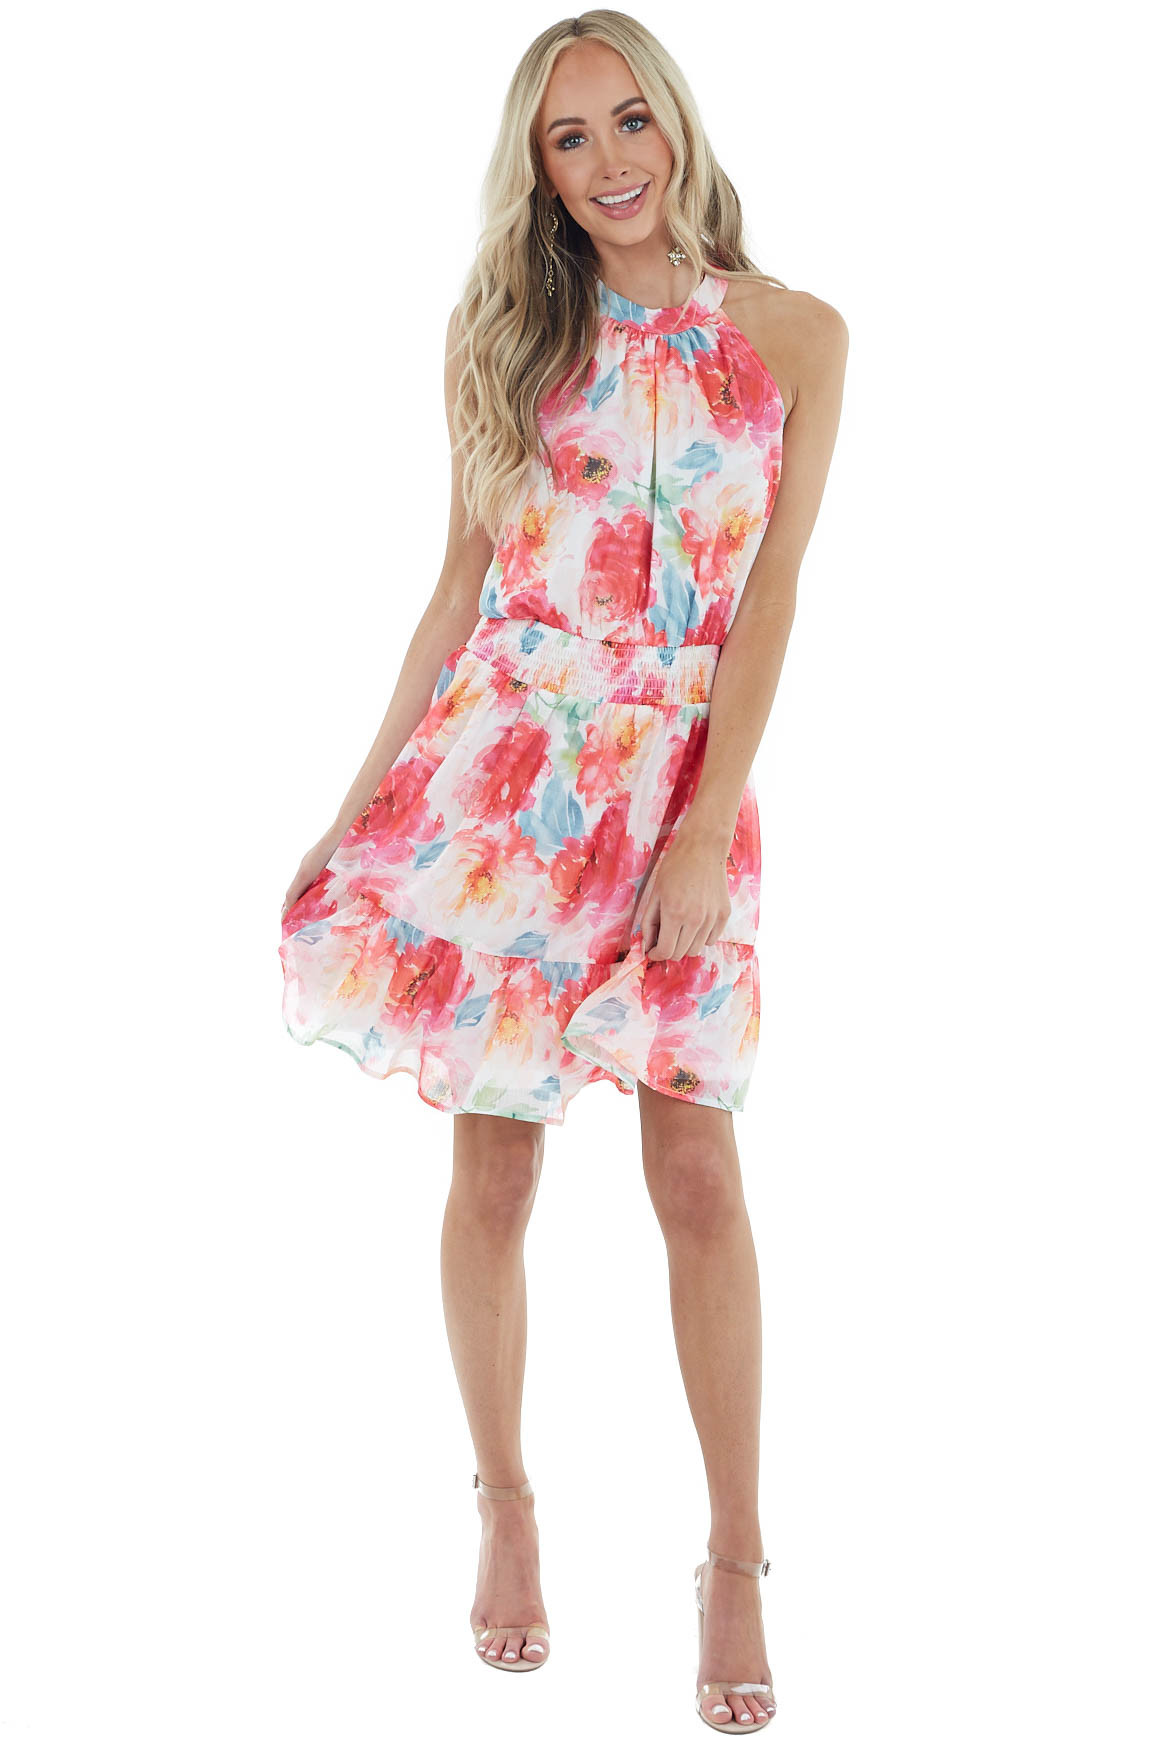 Lipstick Red Floral Print Sleeveless Short Tiered Dress